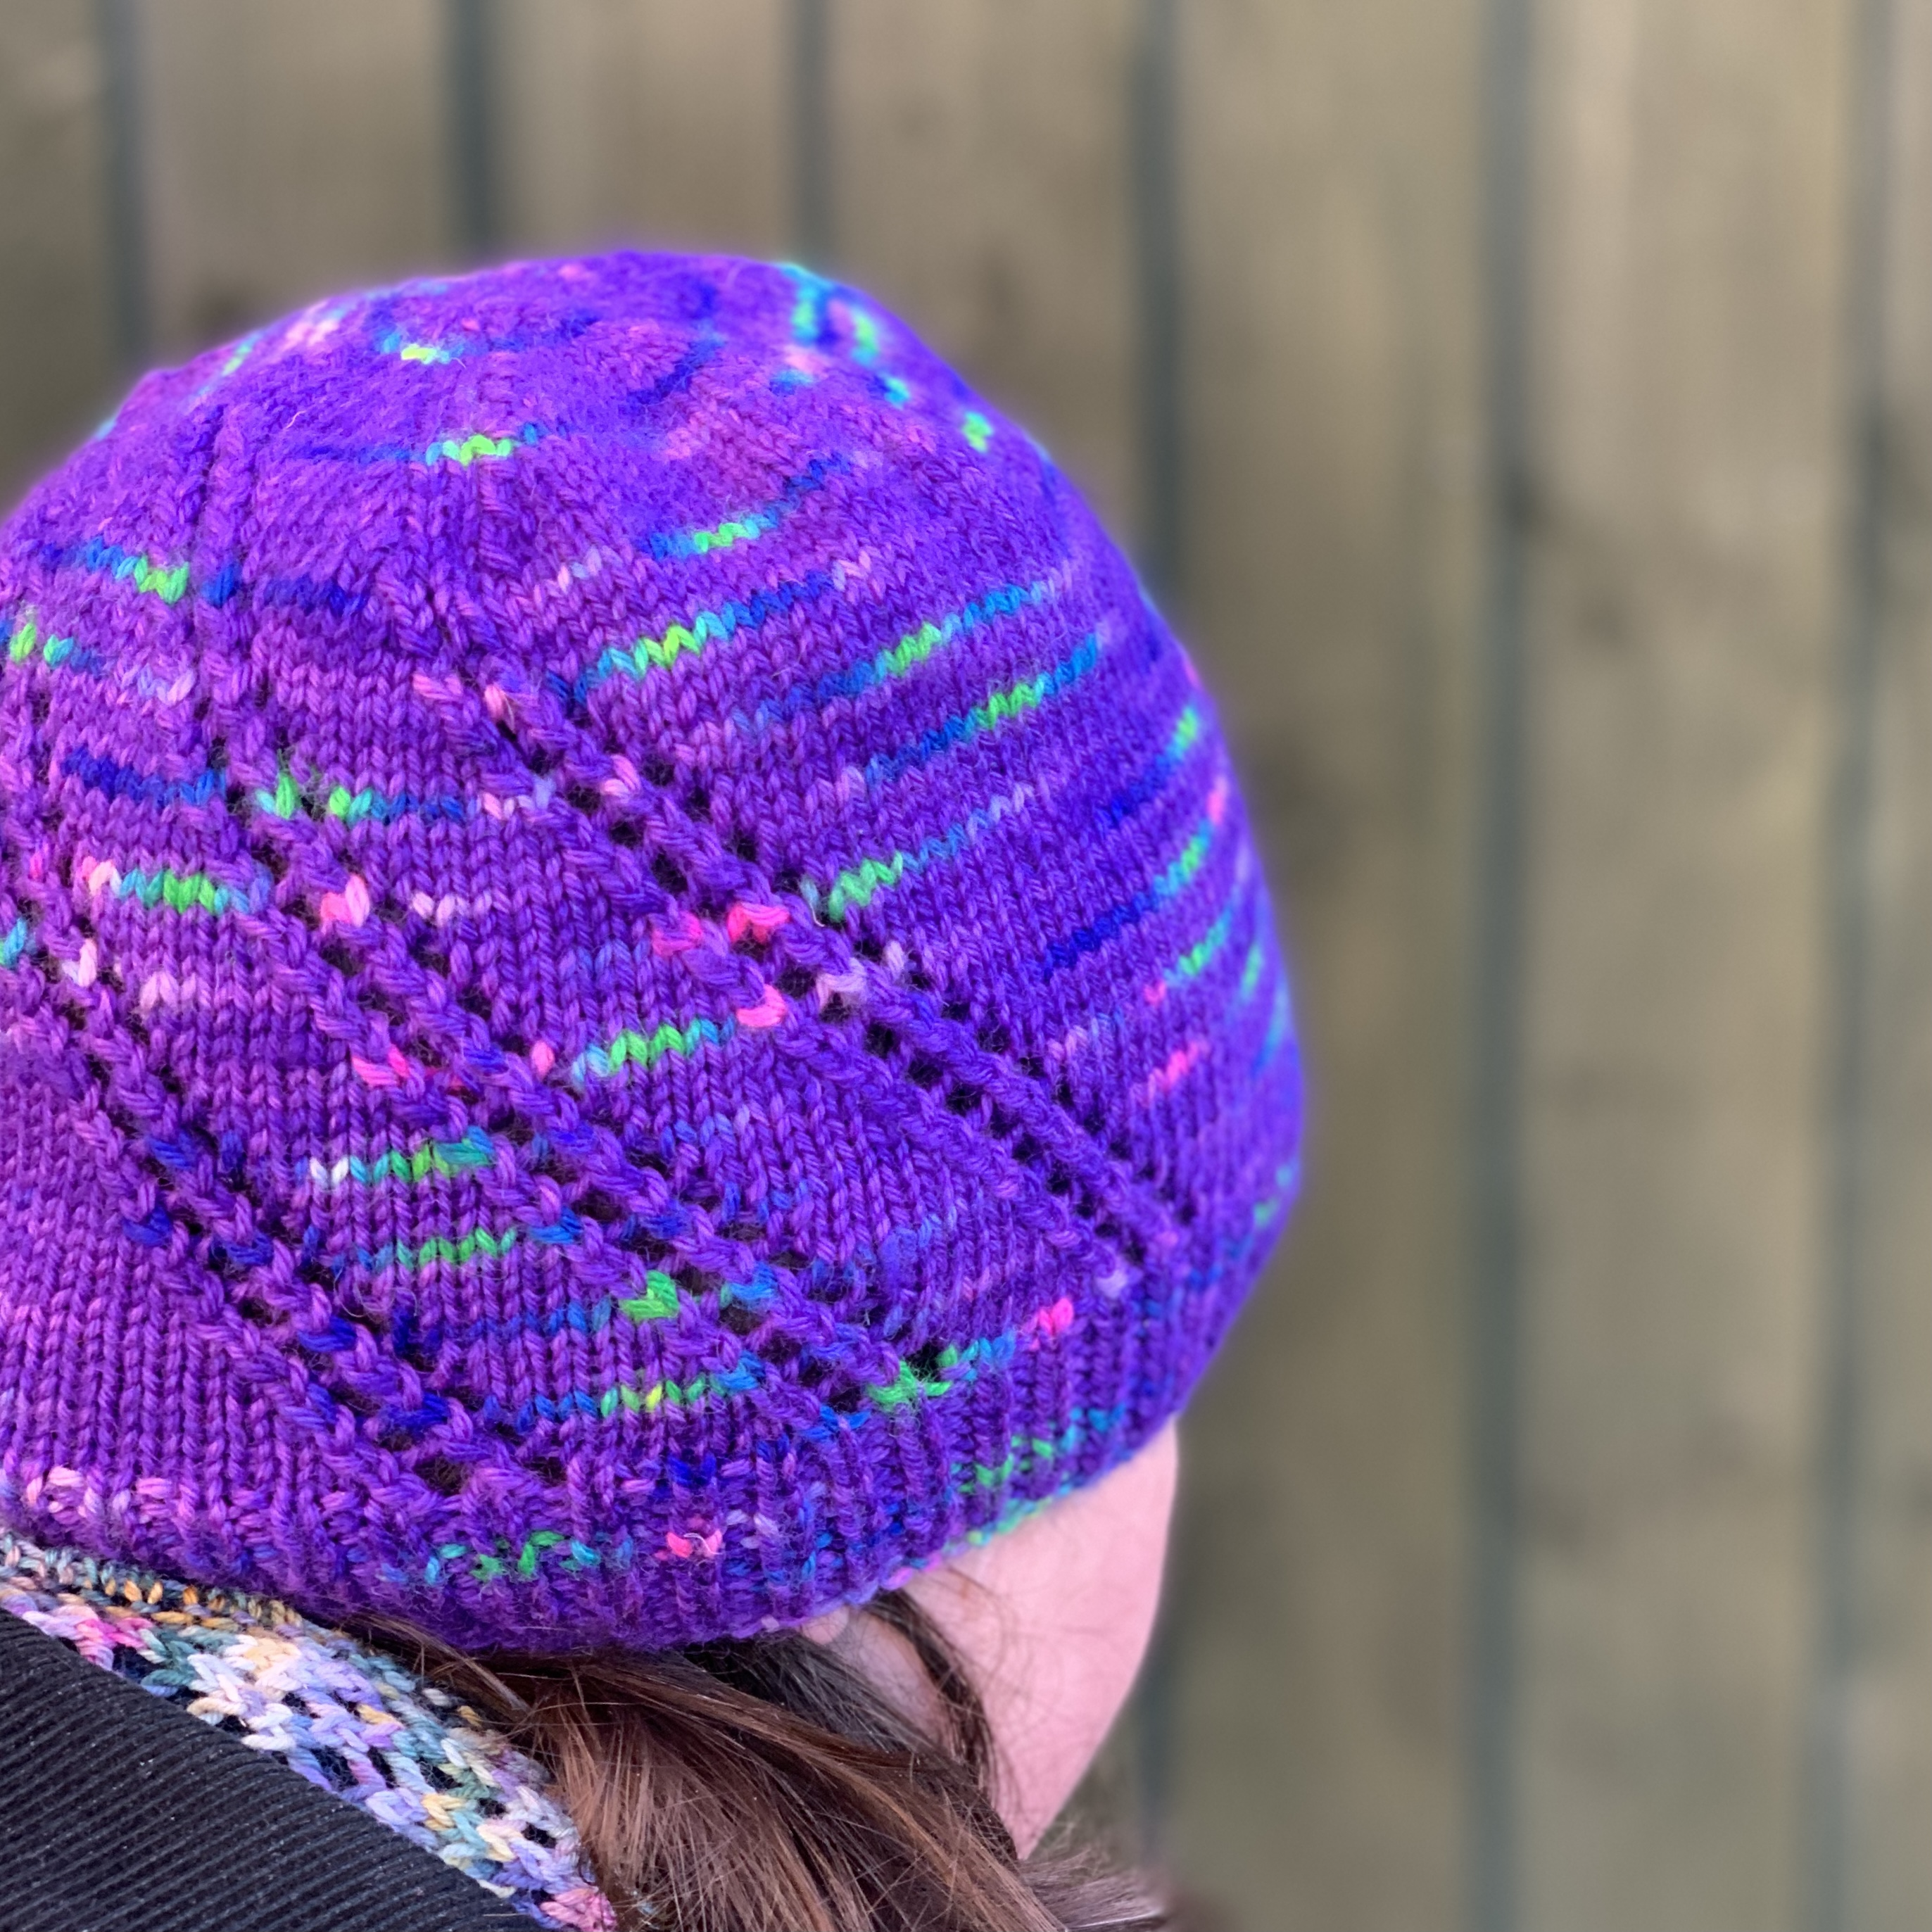 Northern Lights hat. Stocking stitch hat with 3 diagonal lace strips. Yarn used is purple with flashes of bright green, blue and pink.